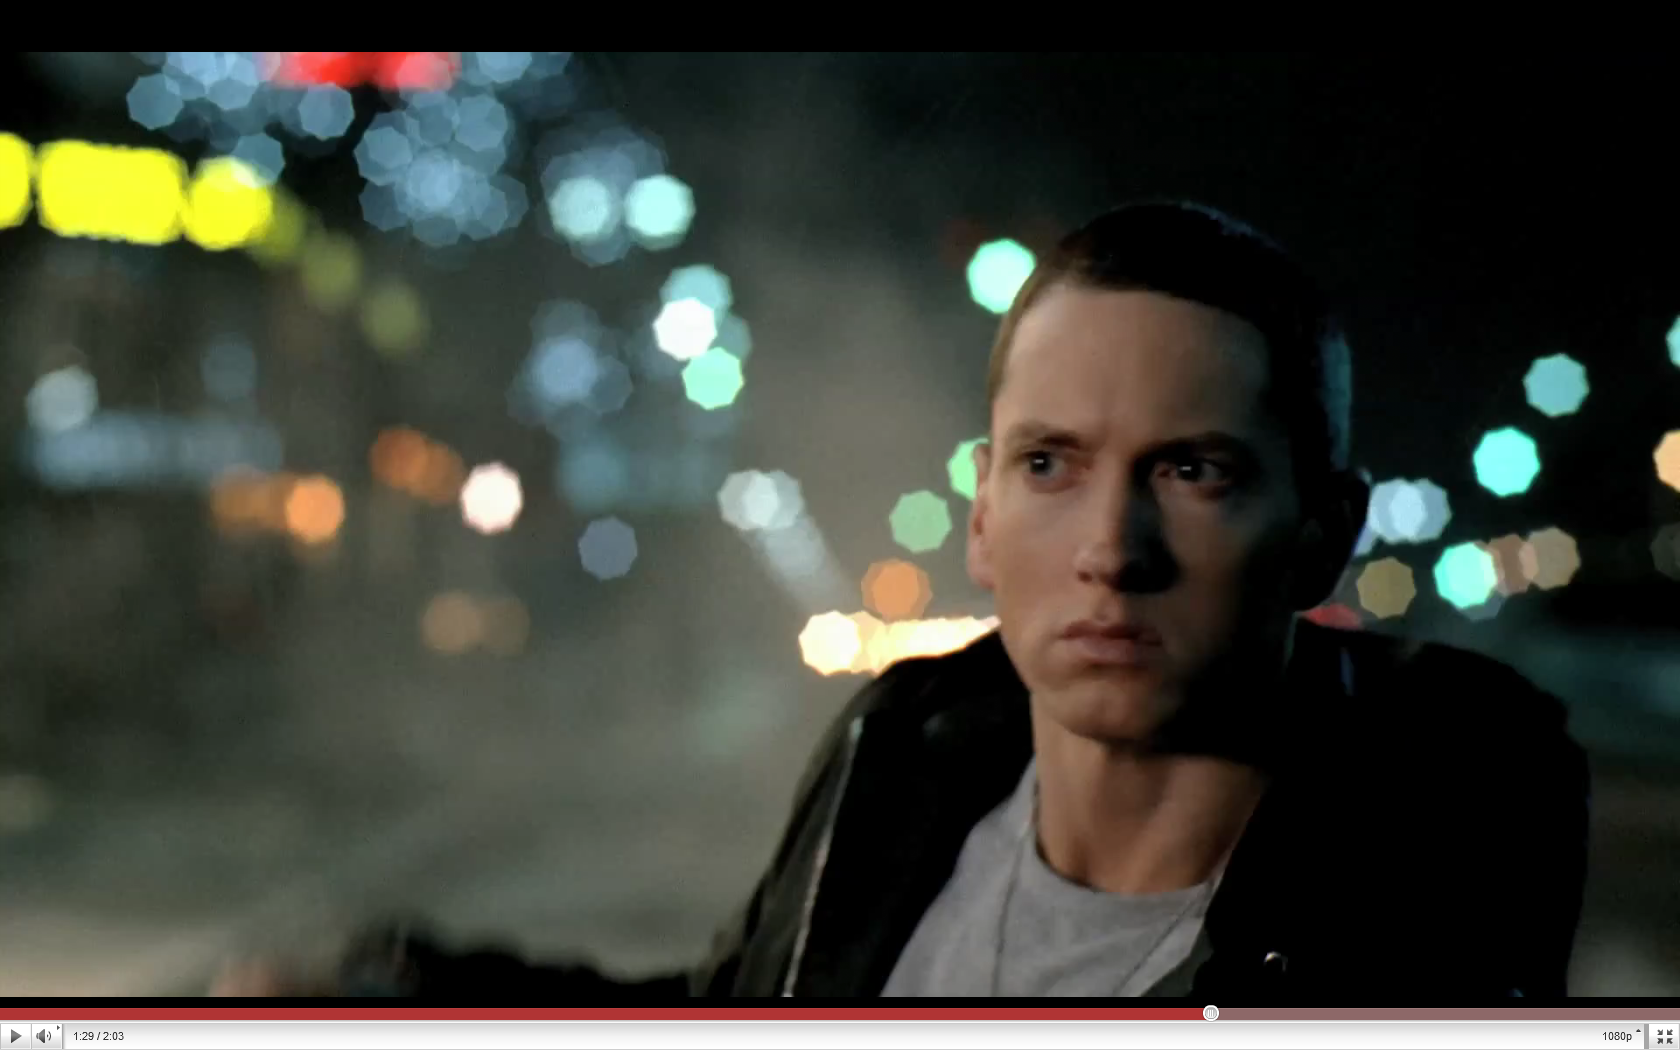 audi plagio, eminem denuncia audi, lose your self plagio